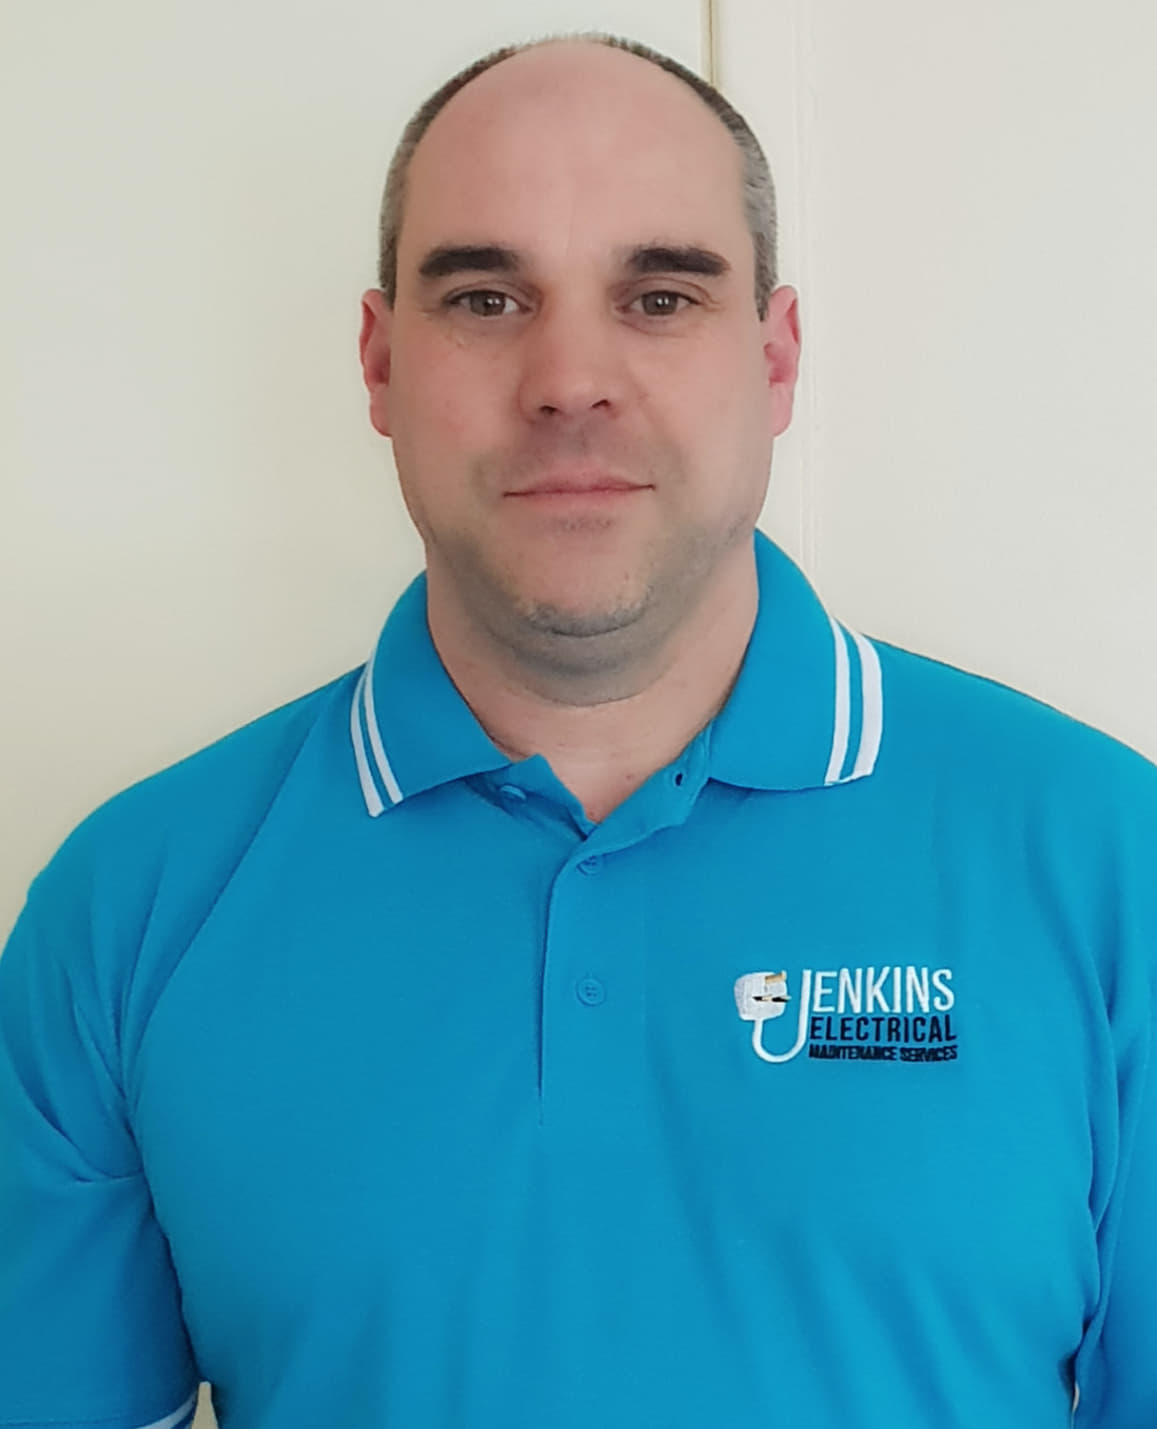 Neill Jenkins - Your Local, Reliable & Trustworthy Electrician in Southampton